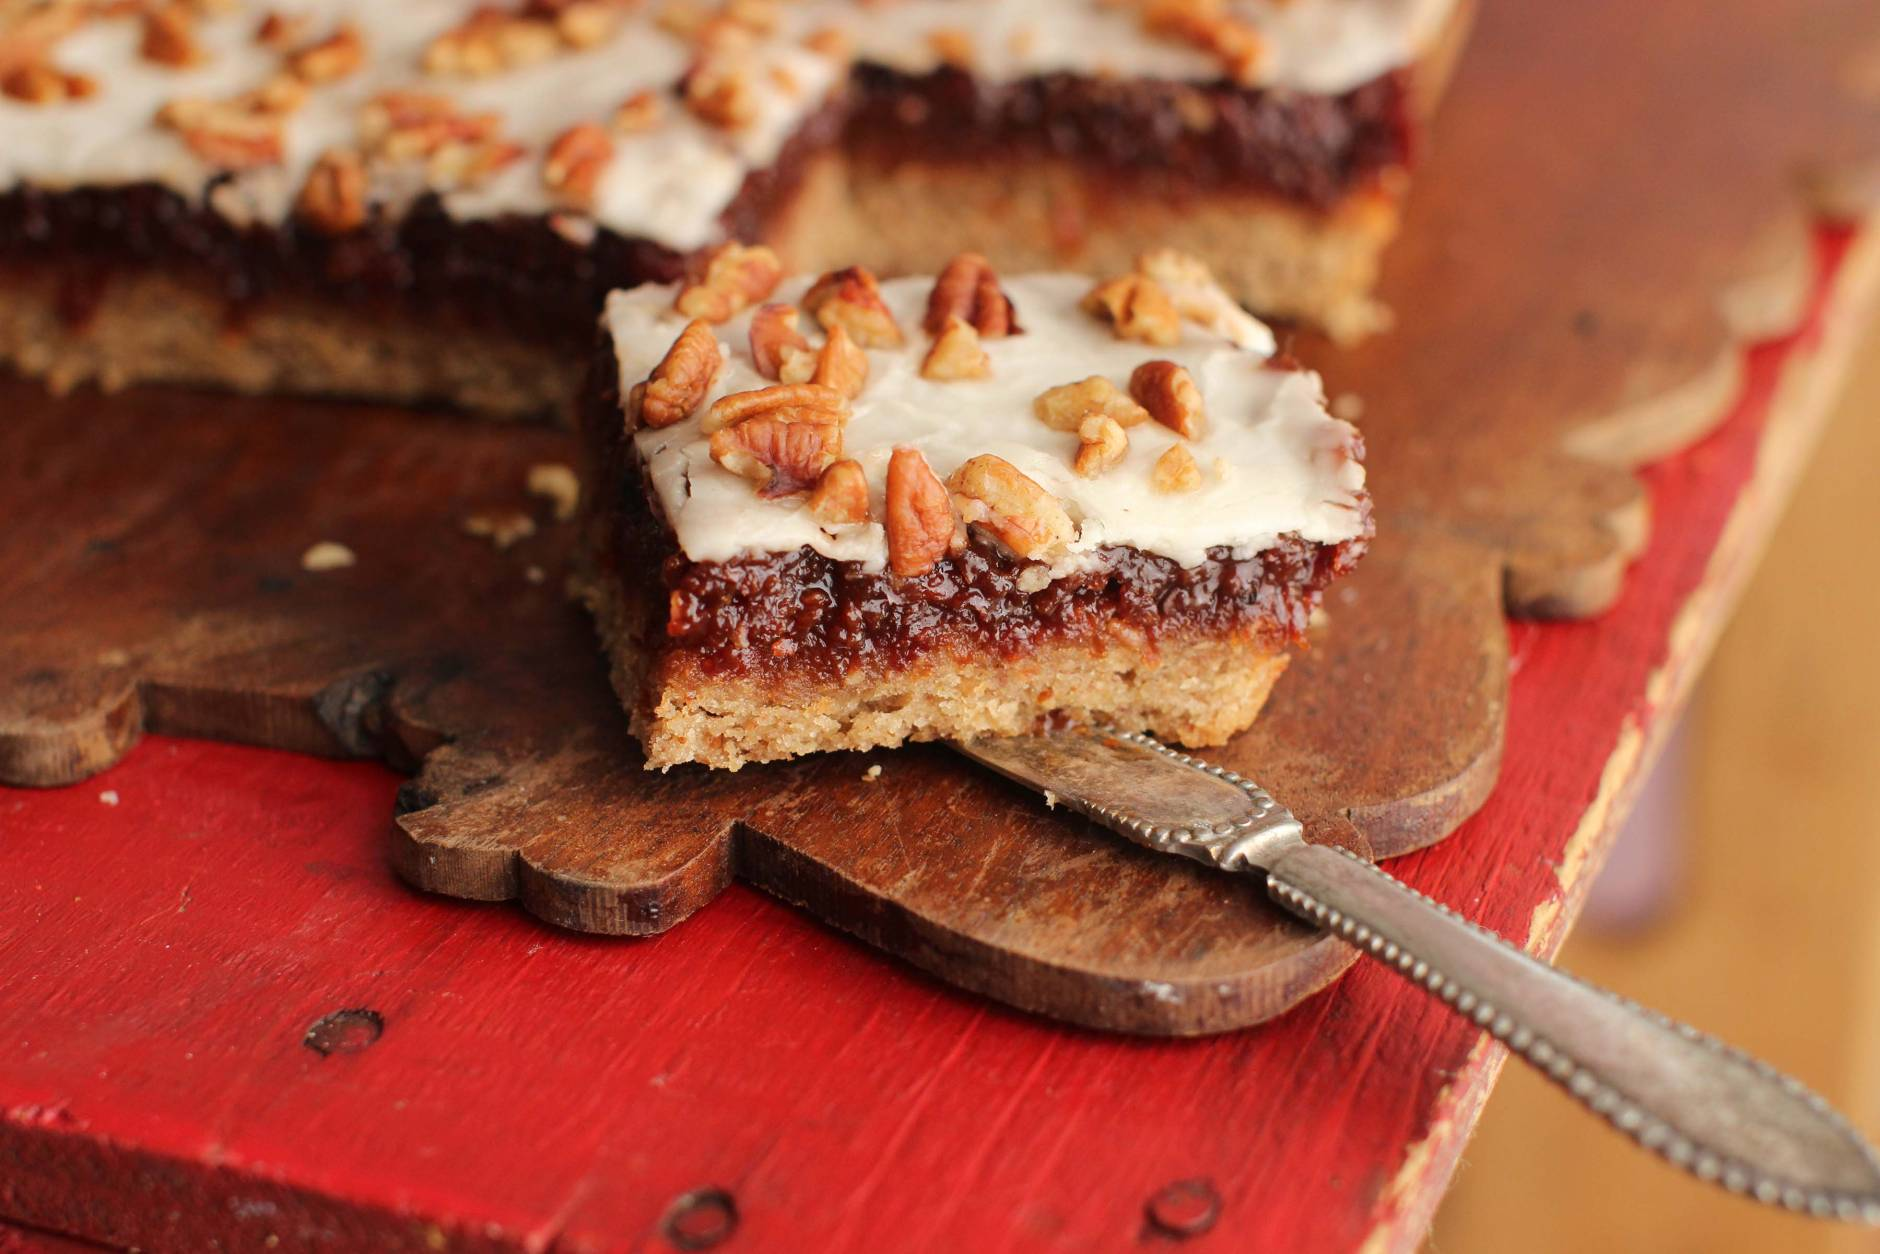 This Sept. 11, 2015 photo shows bourbon cherry bars in Concord, N.H. These cookies are from a recipe by Alison Ladman. (AP Photo/Matthew Mead)